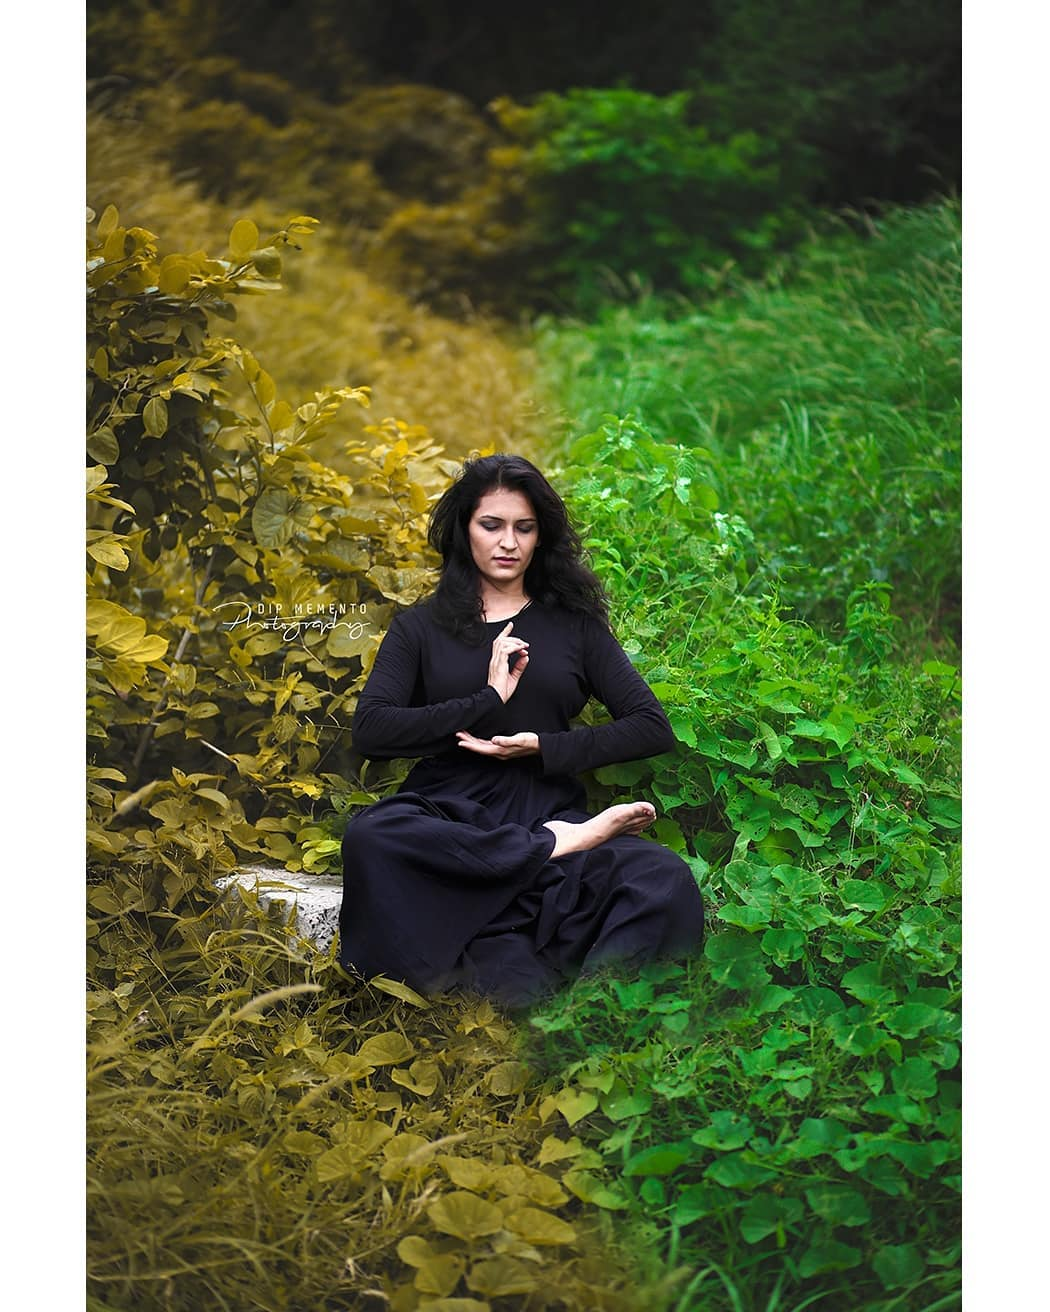 Meditate the S O U L. It will guide further no matter its D R Y or W E T outside. . . InFrame :Riddhi . . Dance with Nature Concept Shoot.  Shoot By: @dip_memento_photography, ---------------*--------------*----------------*---------------*--------- #streetshoot #streetclassicalshoot #streetconceptshoot #conceptshoot #conceptphotoshoot #ahmedabad #dipmementophotography  #dslrofficial  #dance #photooftheday #portraitsofficial #50mm  #picoftheday  #girl #indiafeature #keeptagging #9924227745 #_ip #_ig  #bestoftheday #danceshoot #naturelovers #indiaportraits #indiaportraits #sun #keepdancing